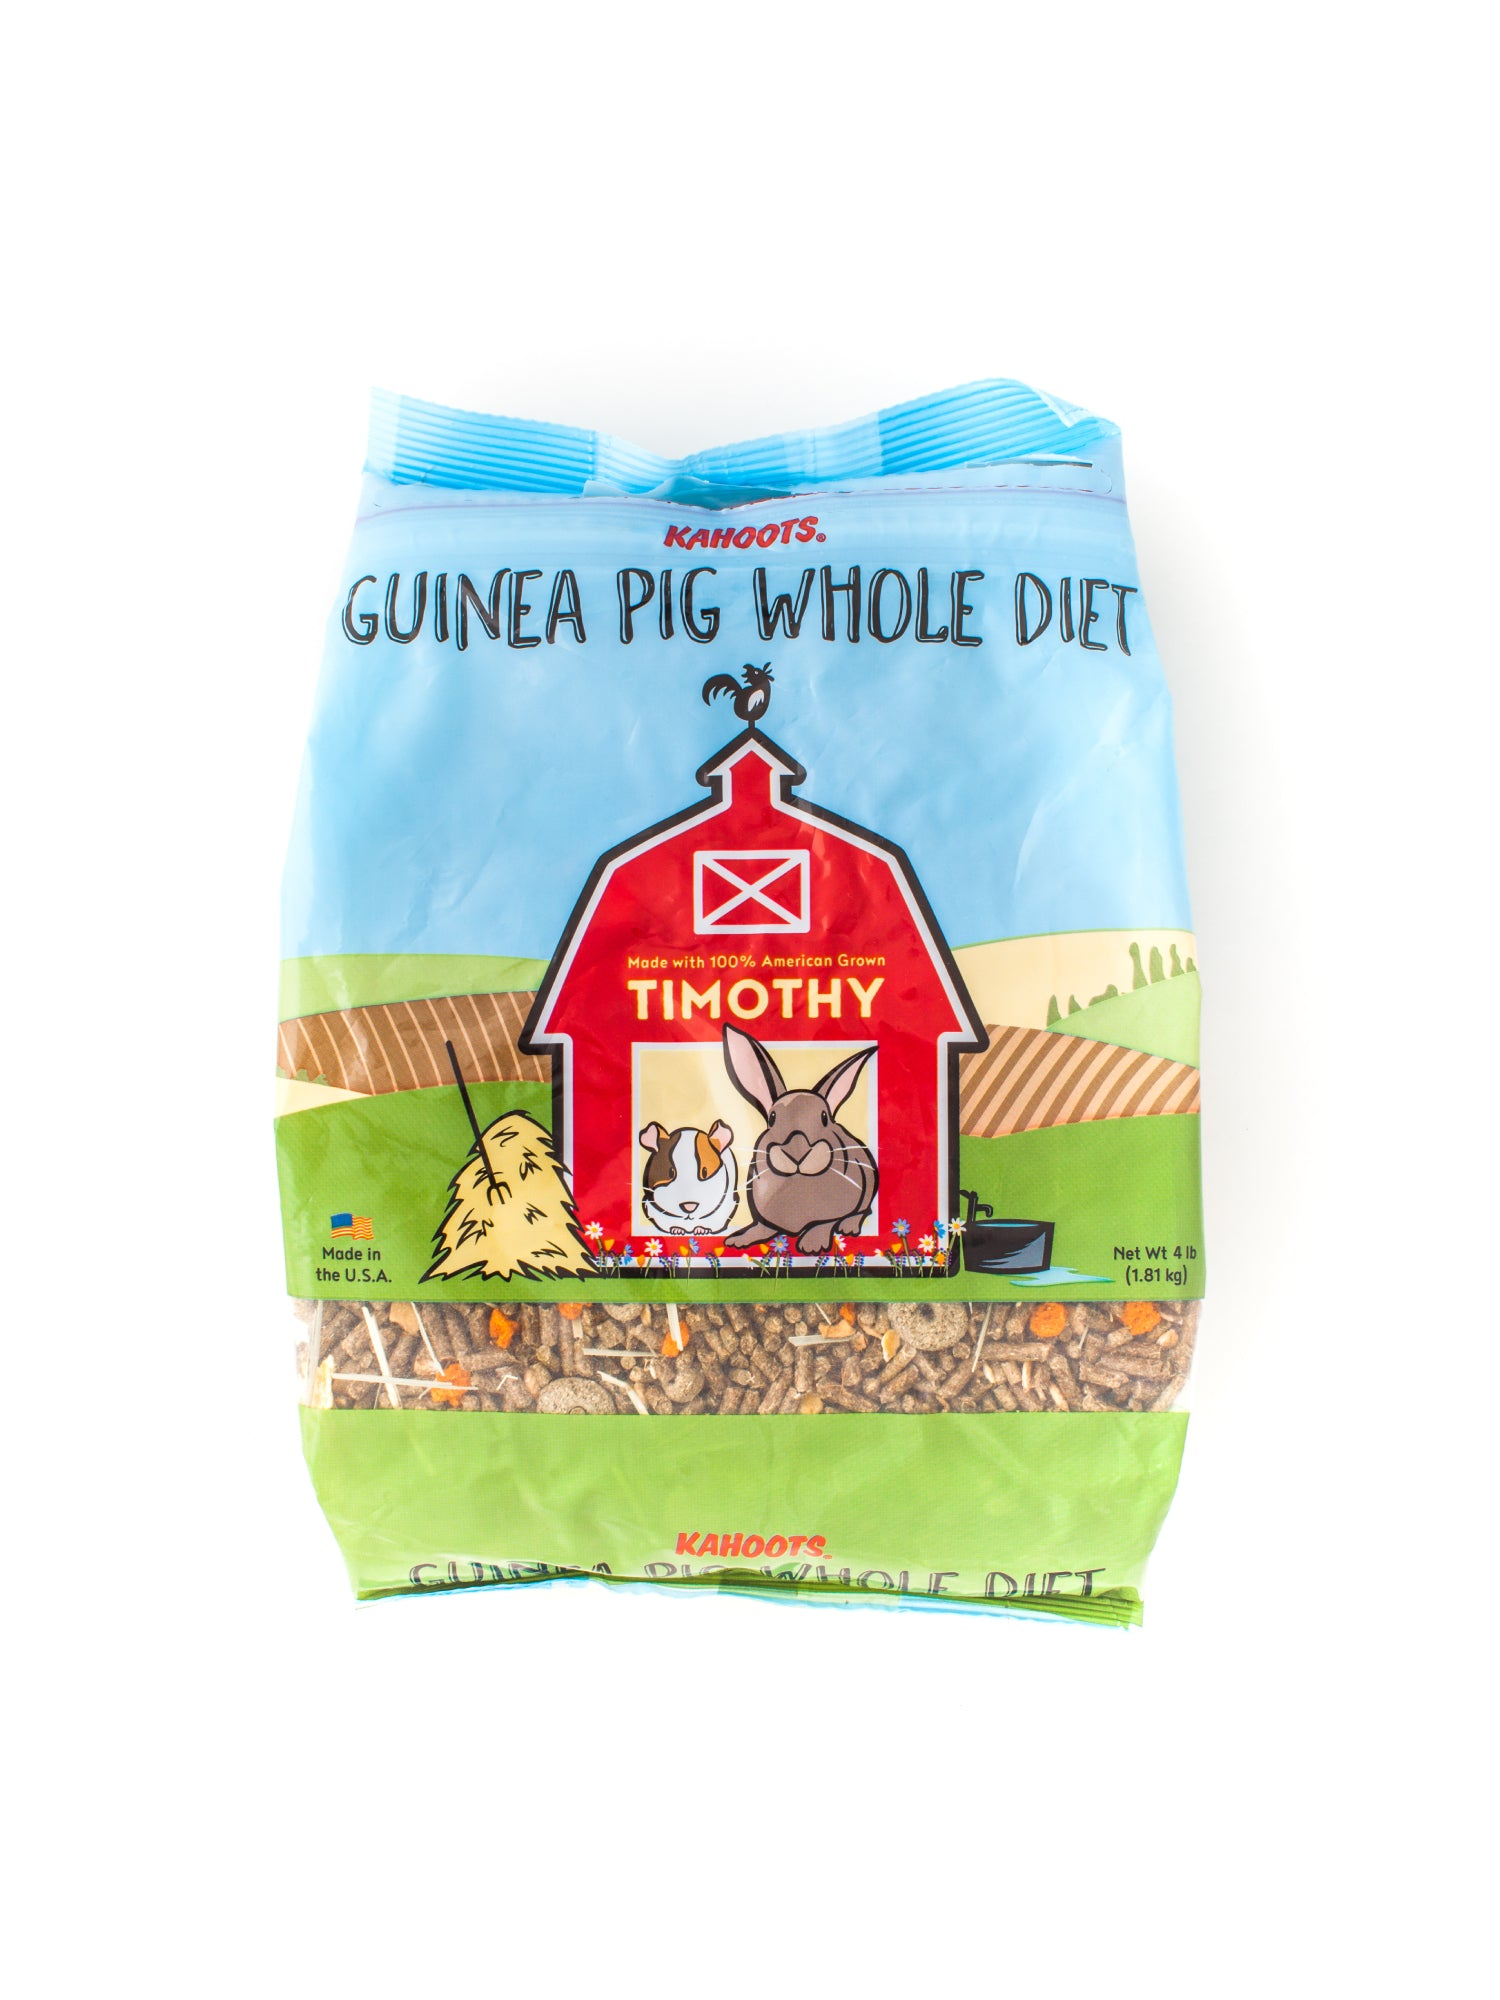 Guinea pig food in bag. Cartoon of rabbit and guinea pig sitting in a red barn on front of bag